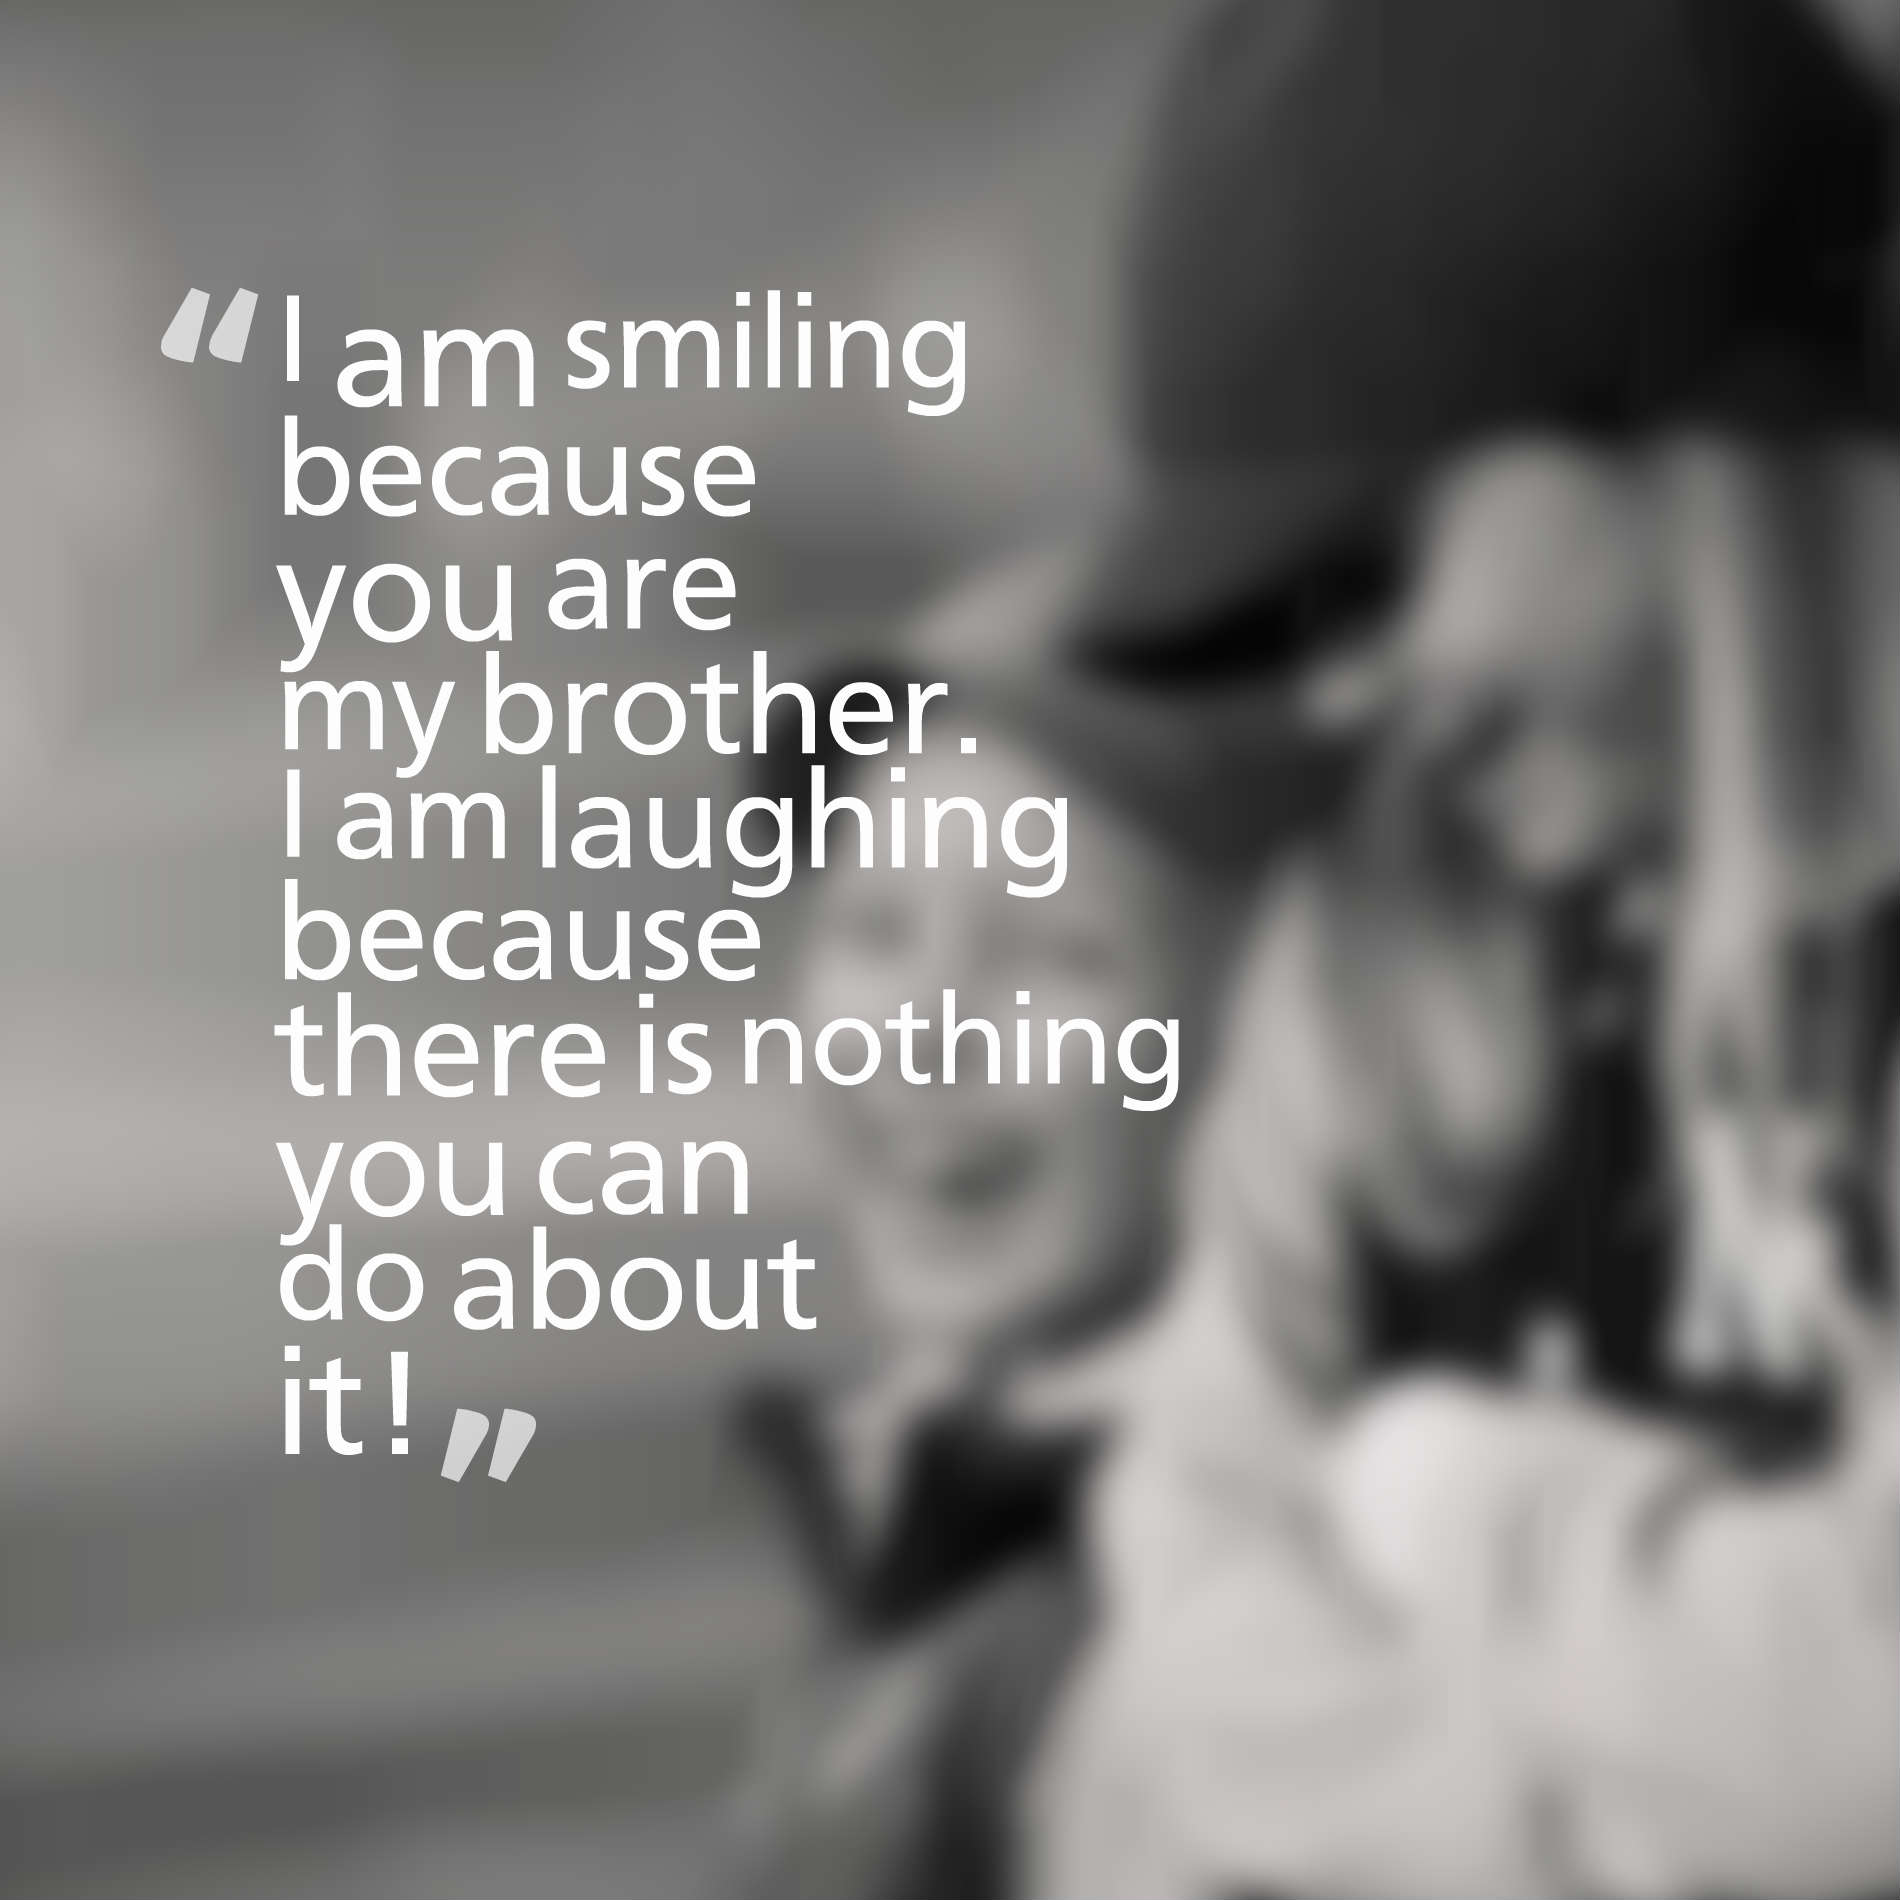 Can Your About Because Because Laugh My You I Nothing Theres I Sister Love Do It You